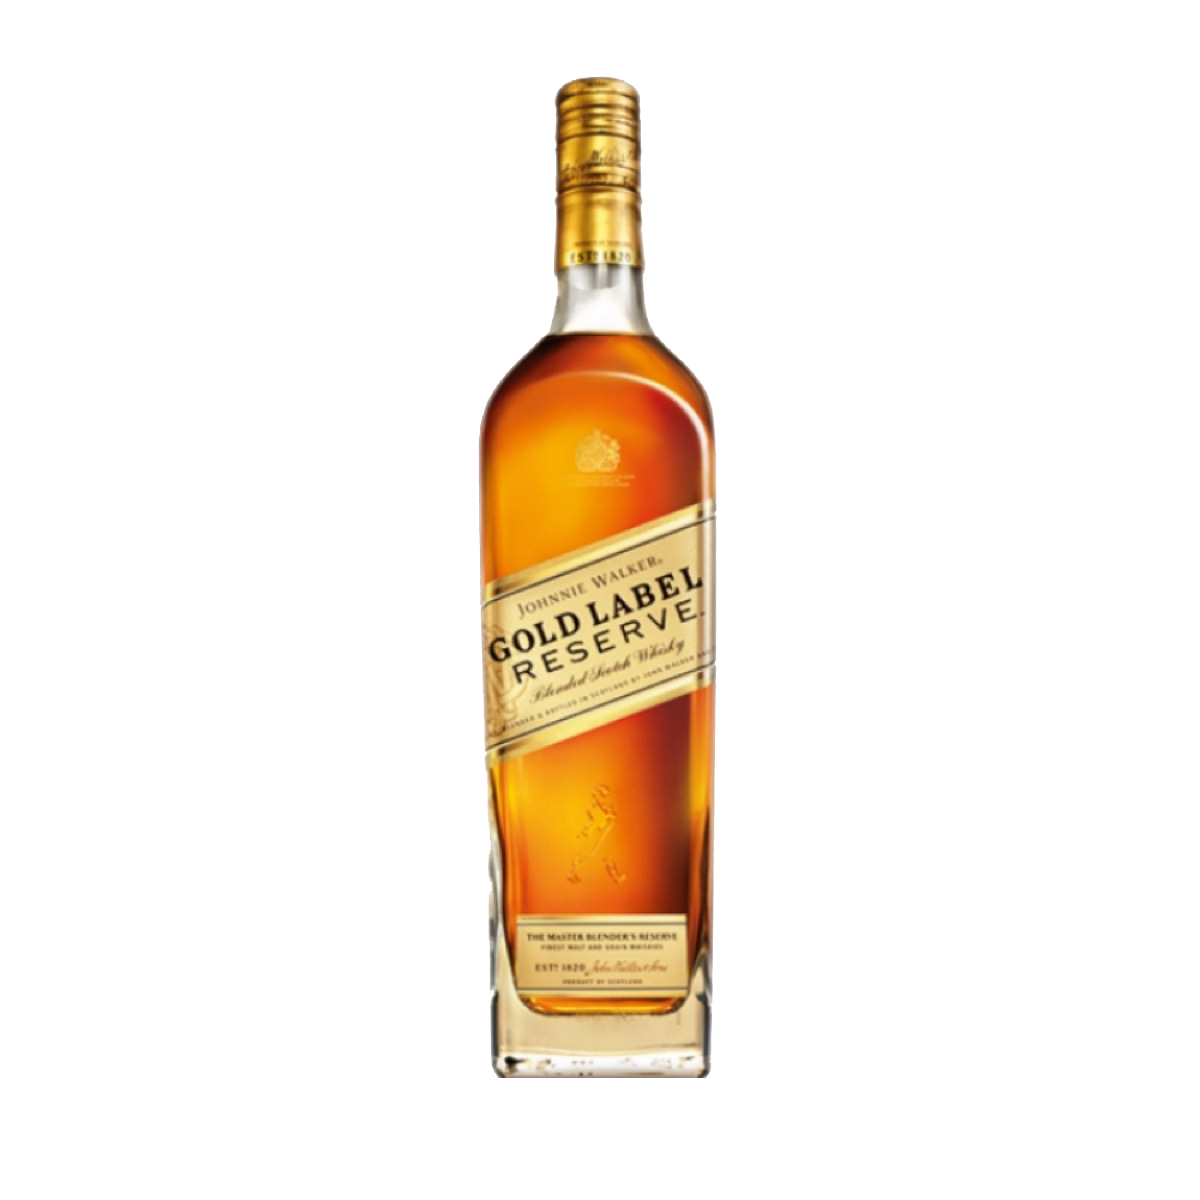 Gold label png. Johnnie walker reserve cl